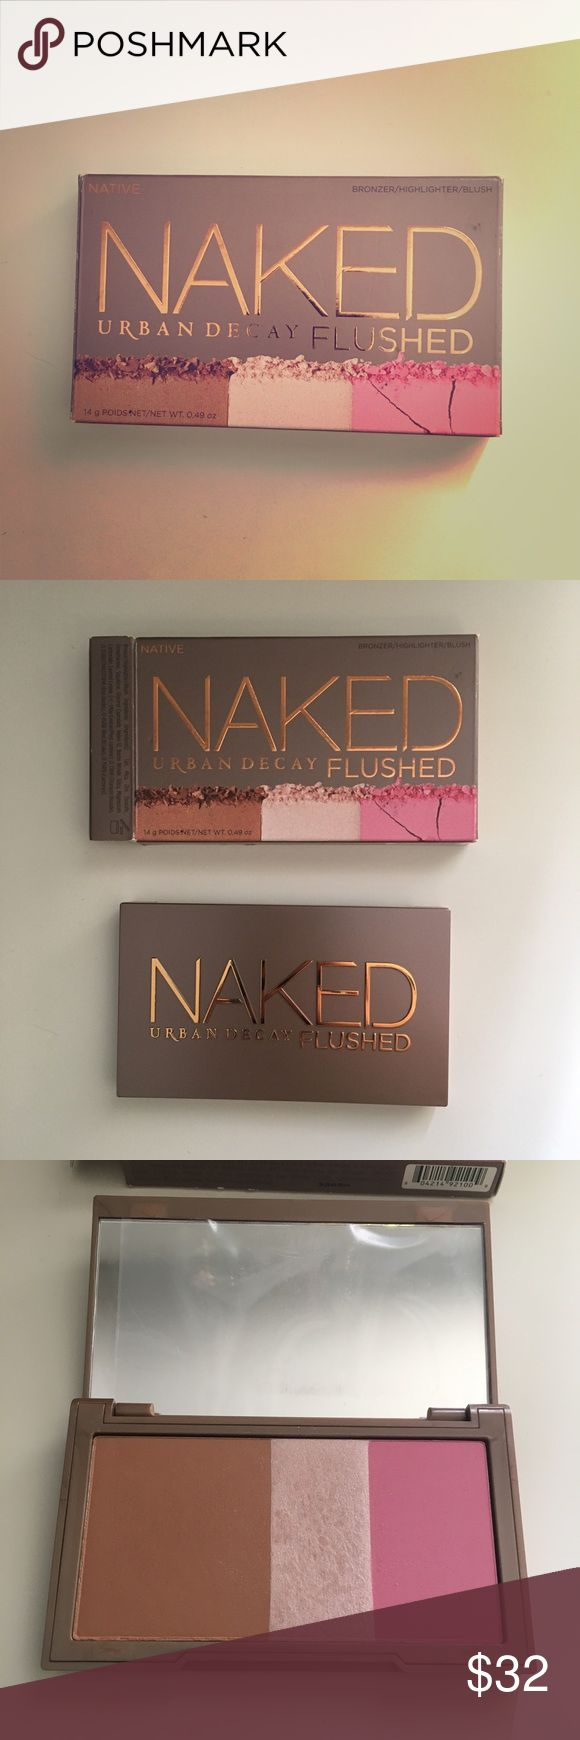 Urban Decay Naked Flushed Blush Highlighter Bronze Urban Decay Blush/Highlighter/Bronzer  Naked/Flushed Palette New in box never used Box has some tiny signs of wear (see photos) but item itself is in perfect condition Plastic cover on mirror is still intact Urban Decay Makeup